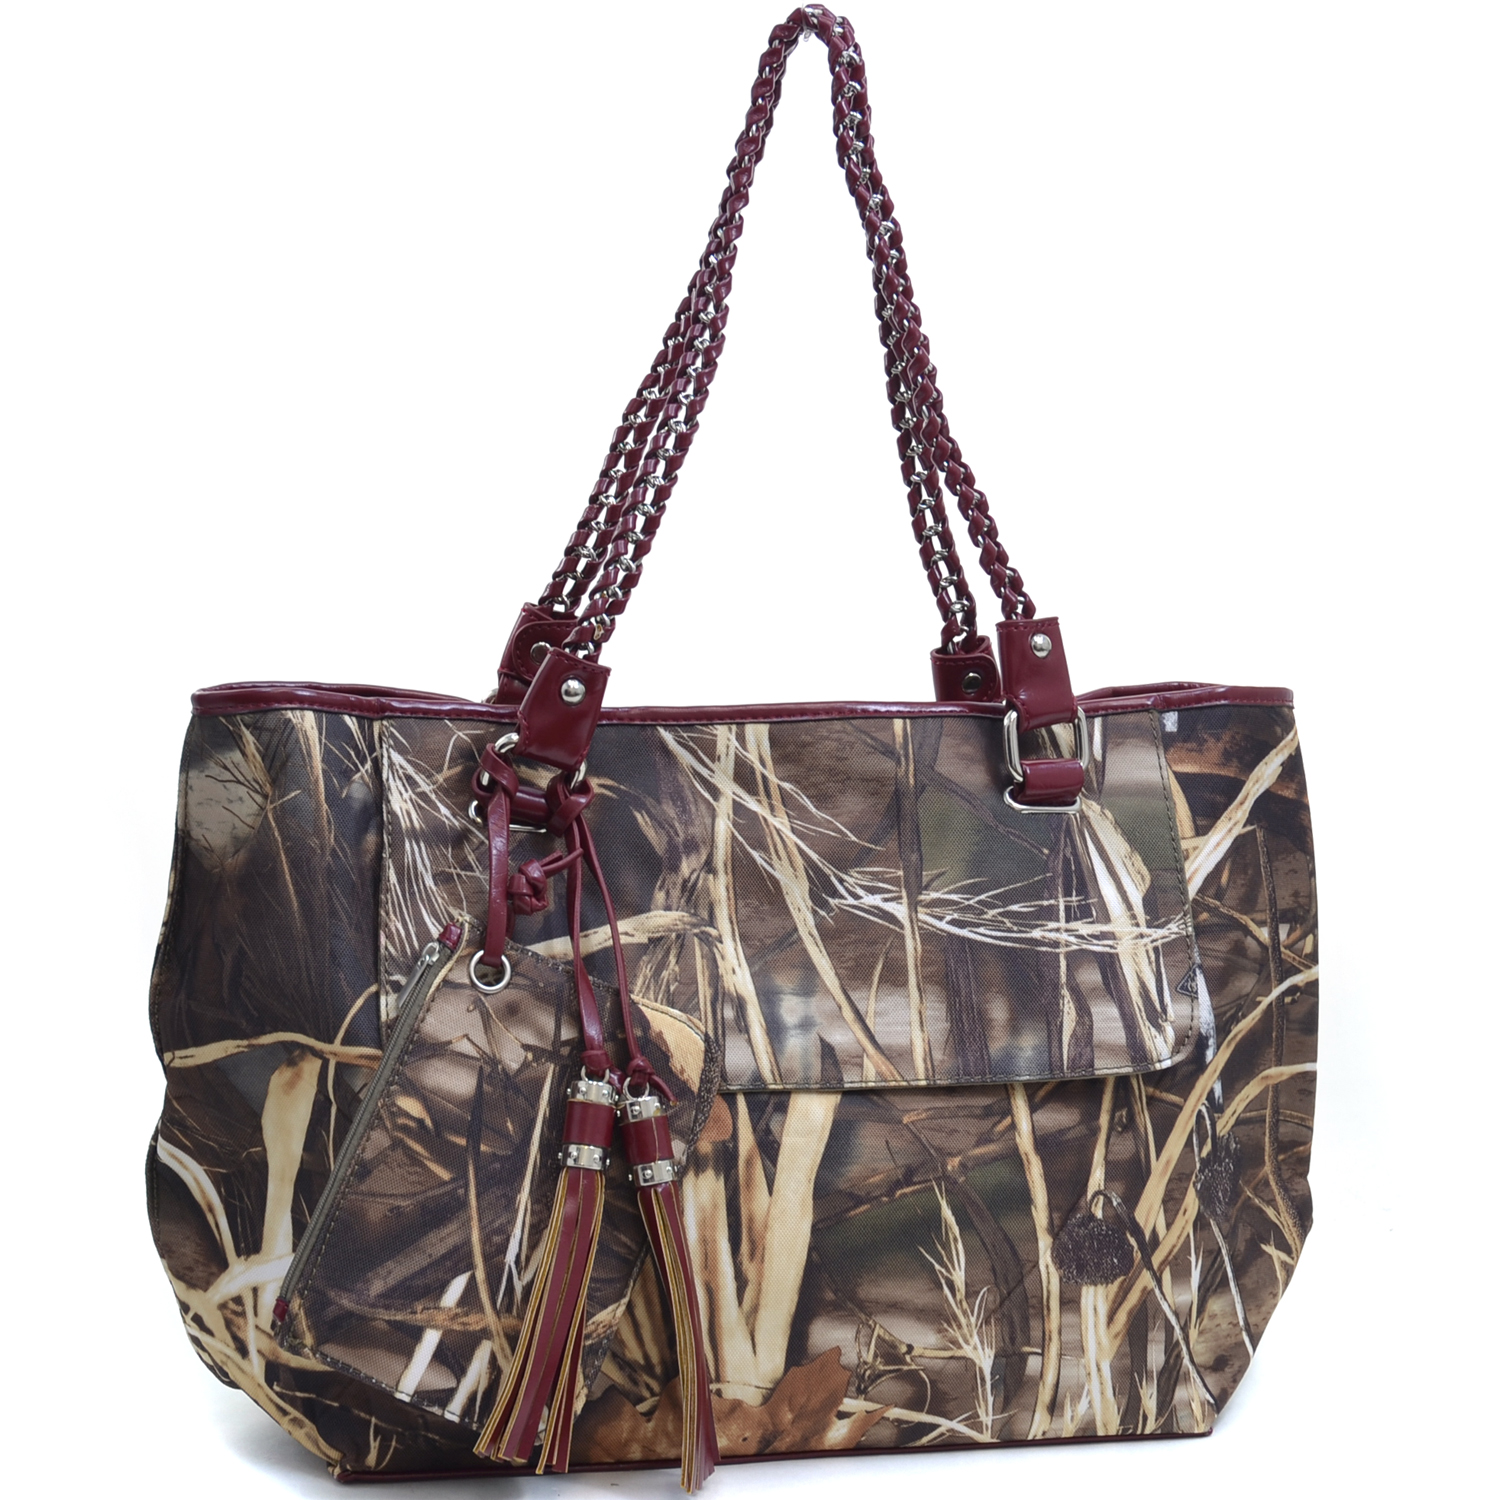 Realtree ® camouflage tote bag w/ coin purse & tassels